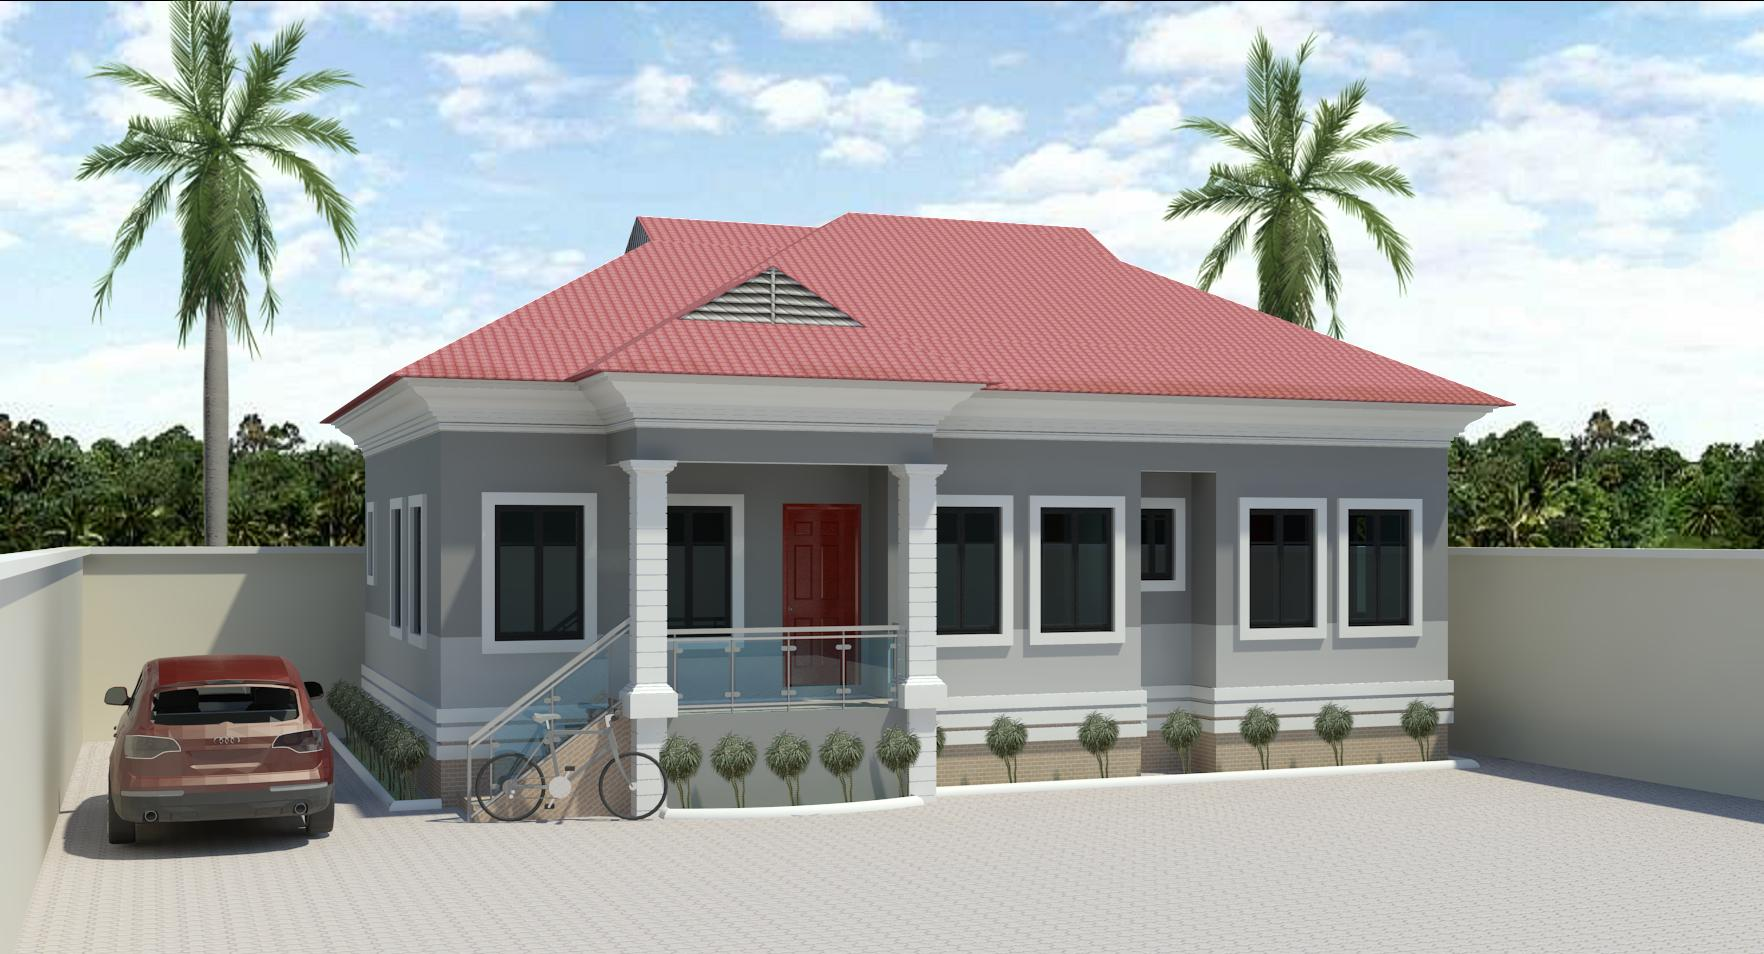 3bedroom bungalow designs in nigeria joy studio design for Free 3 bedroom bungalow house plans